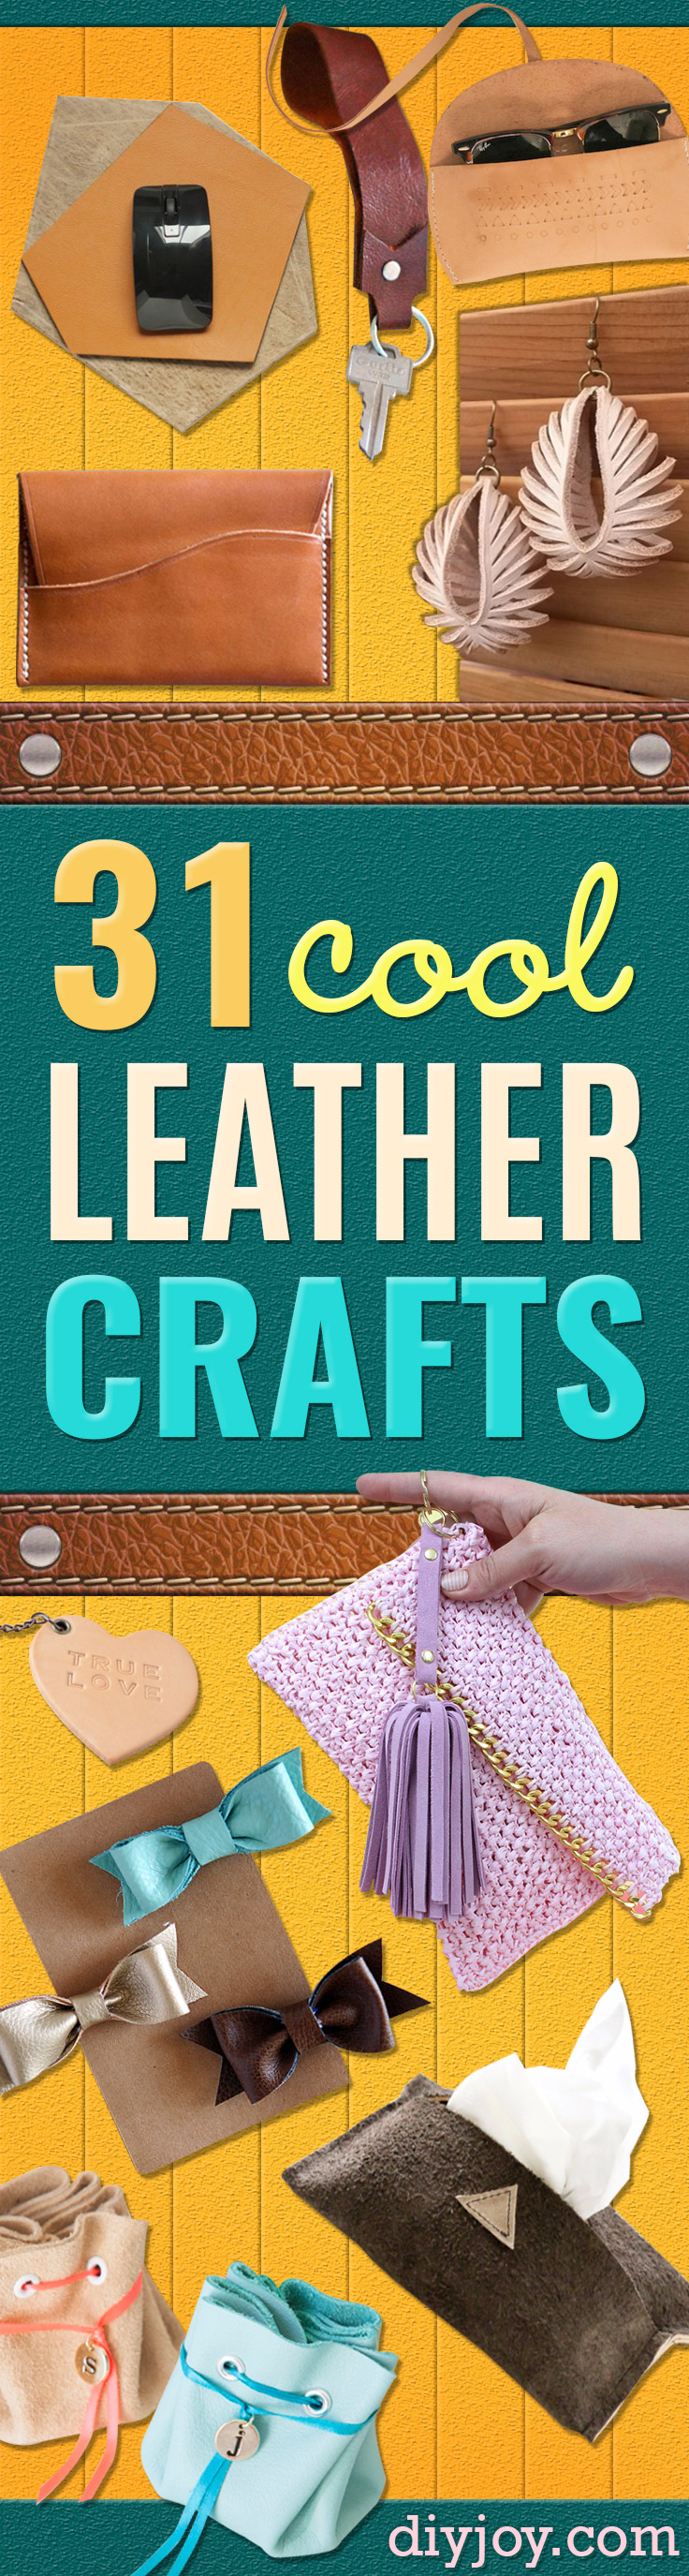 31 creatively cool leather crafts creative leather crafts best diy projects made with leather easy handmade do it yourself solutioingenieria Image collections